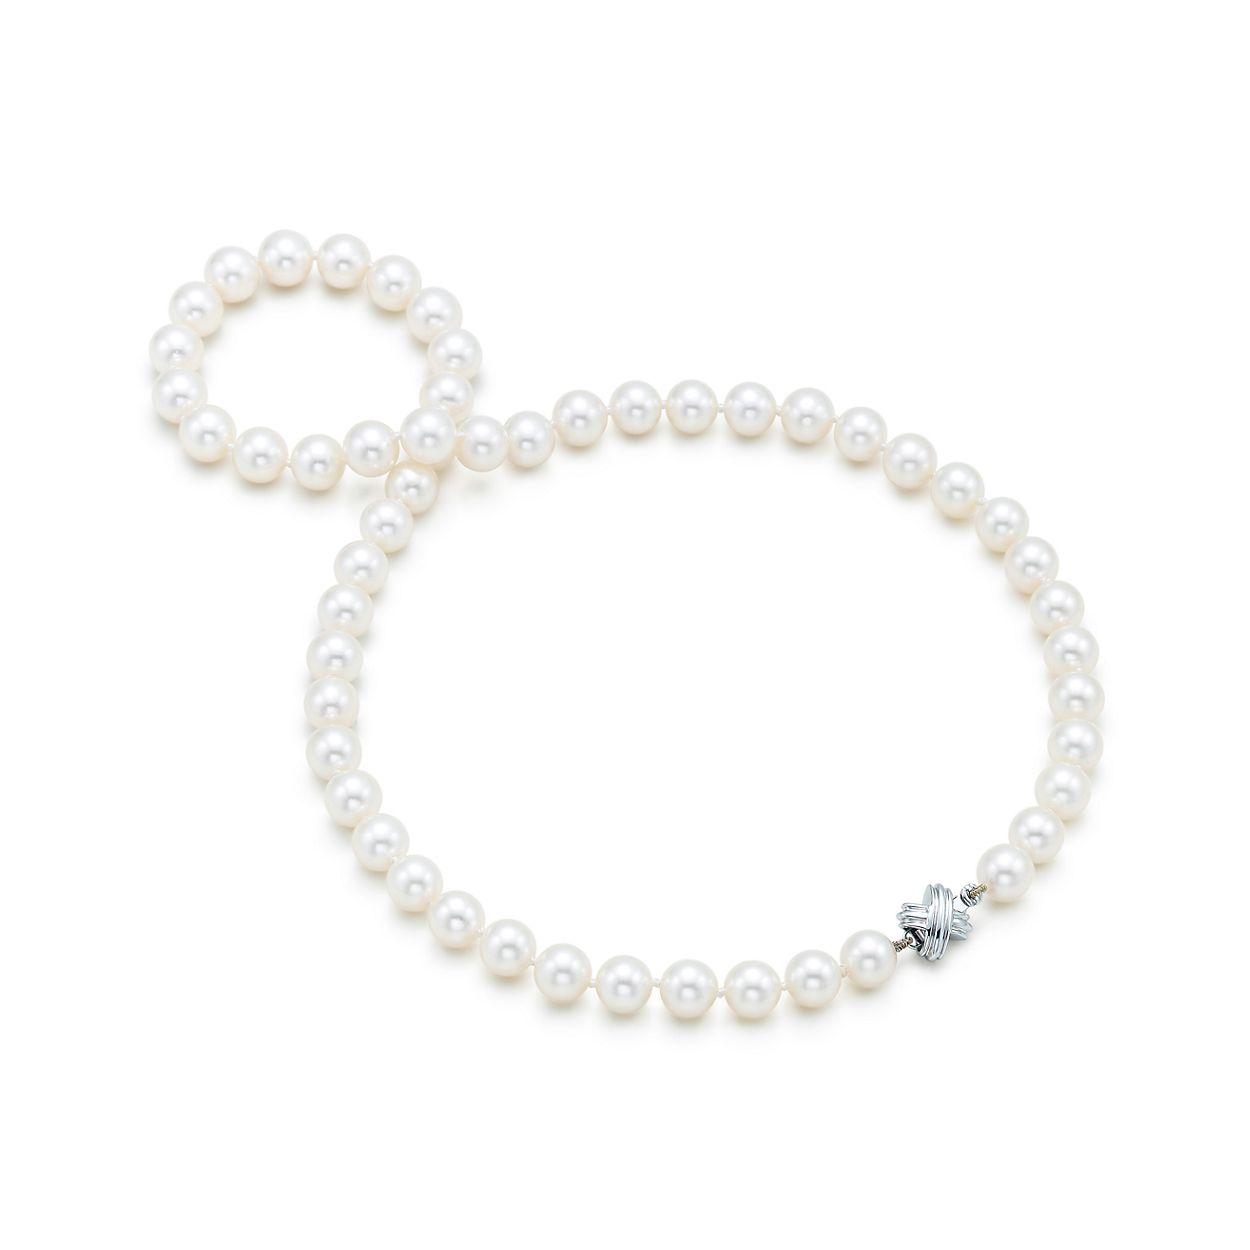 Tiffany signature pearls necklace of pearls with 18k white gold tiffany signature pearlsnecklace tiffany signature pearlsnecklace aloadofball Gallery